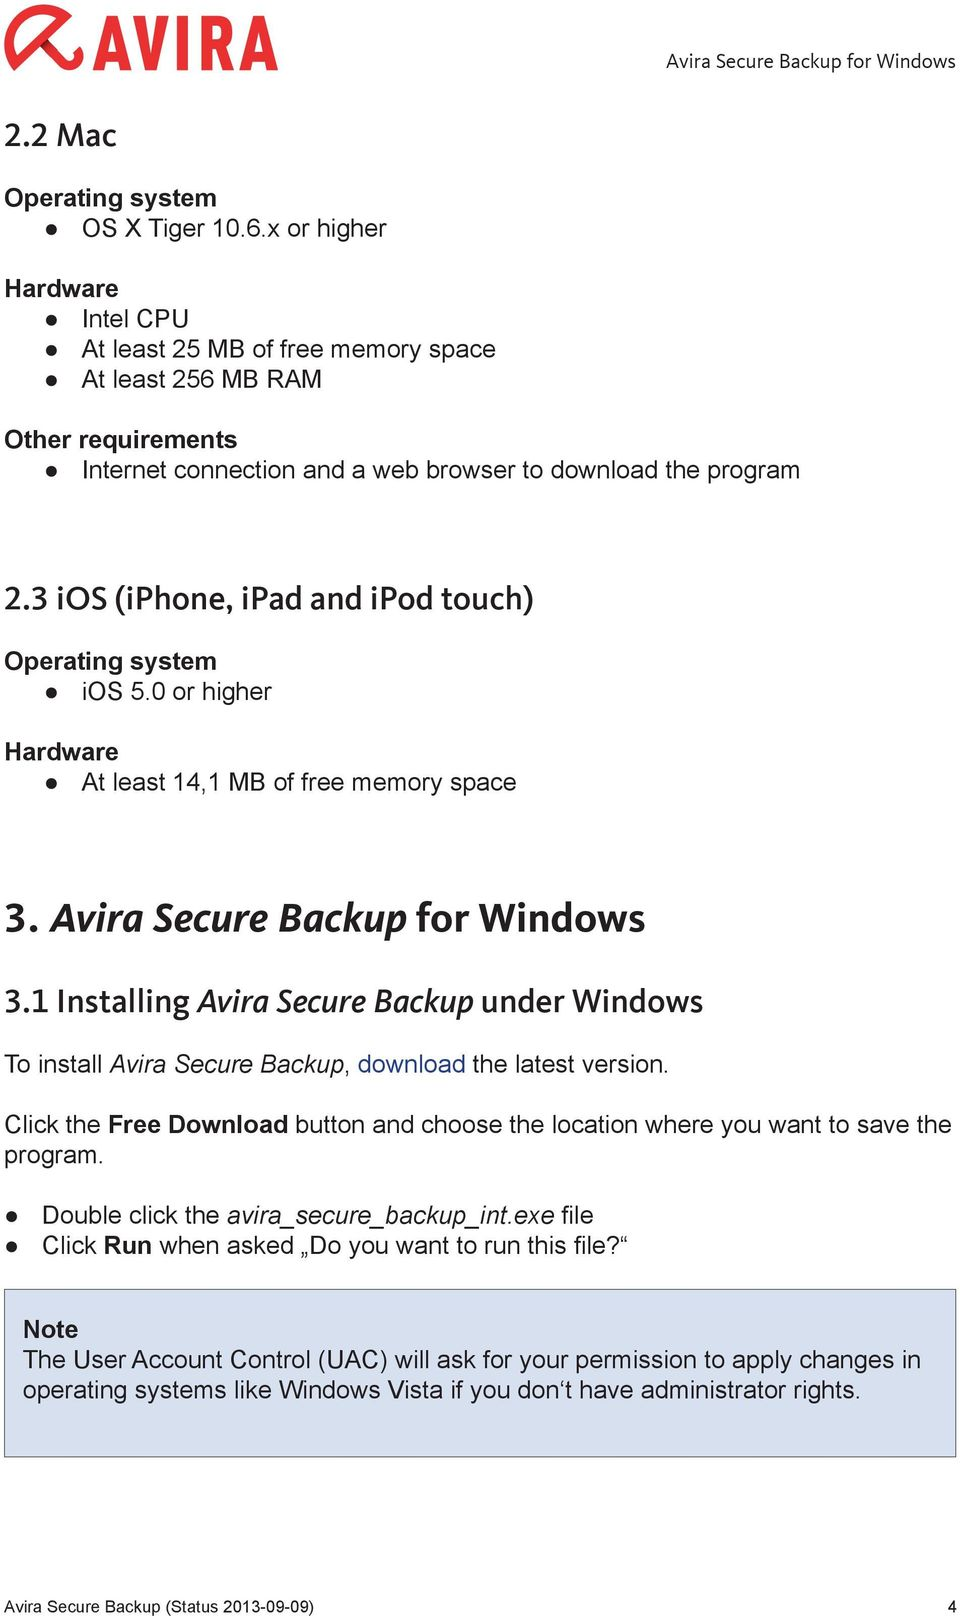 3 ios (iphone, ipad and ipod touch) Operating system ios 5.0 or higher Hardware At least 14,1 MB of free memory space 3. Avira Secure Backup for Windows 3.